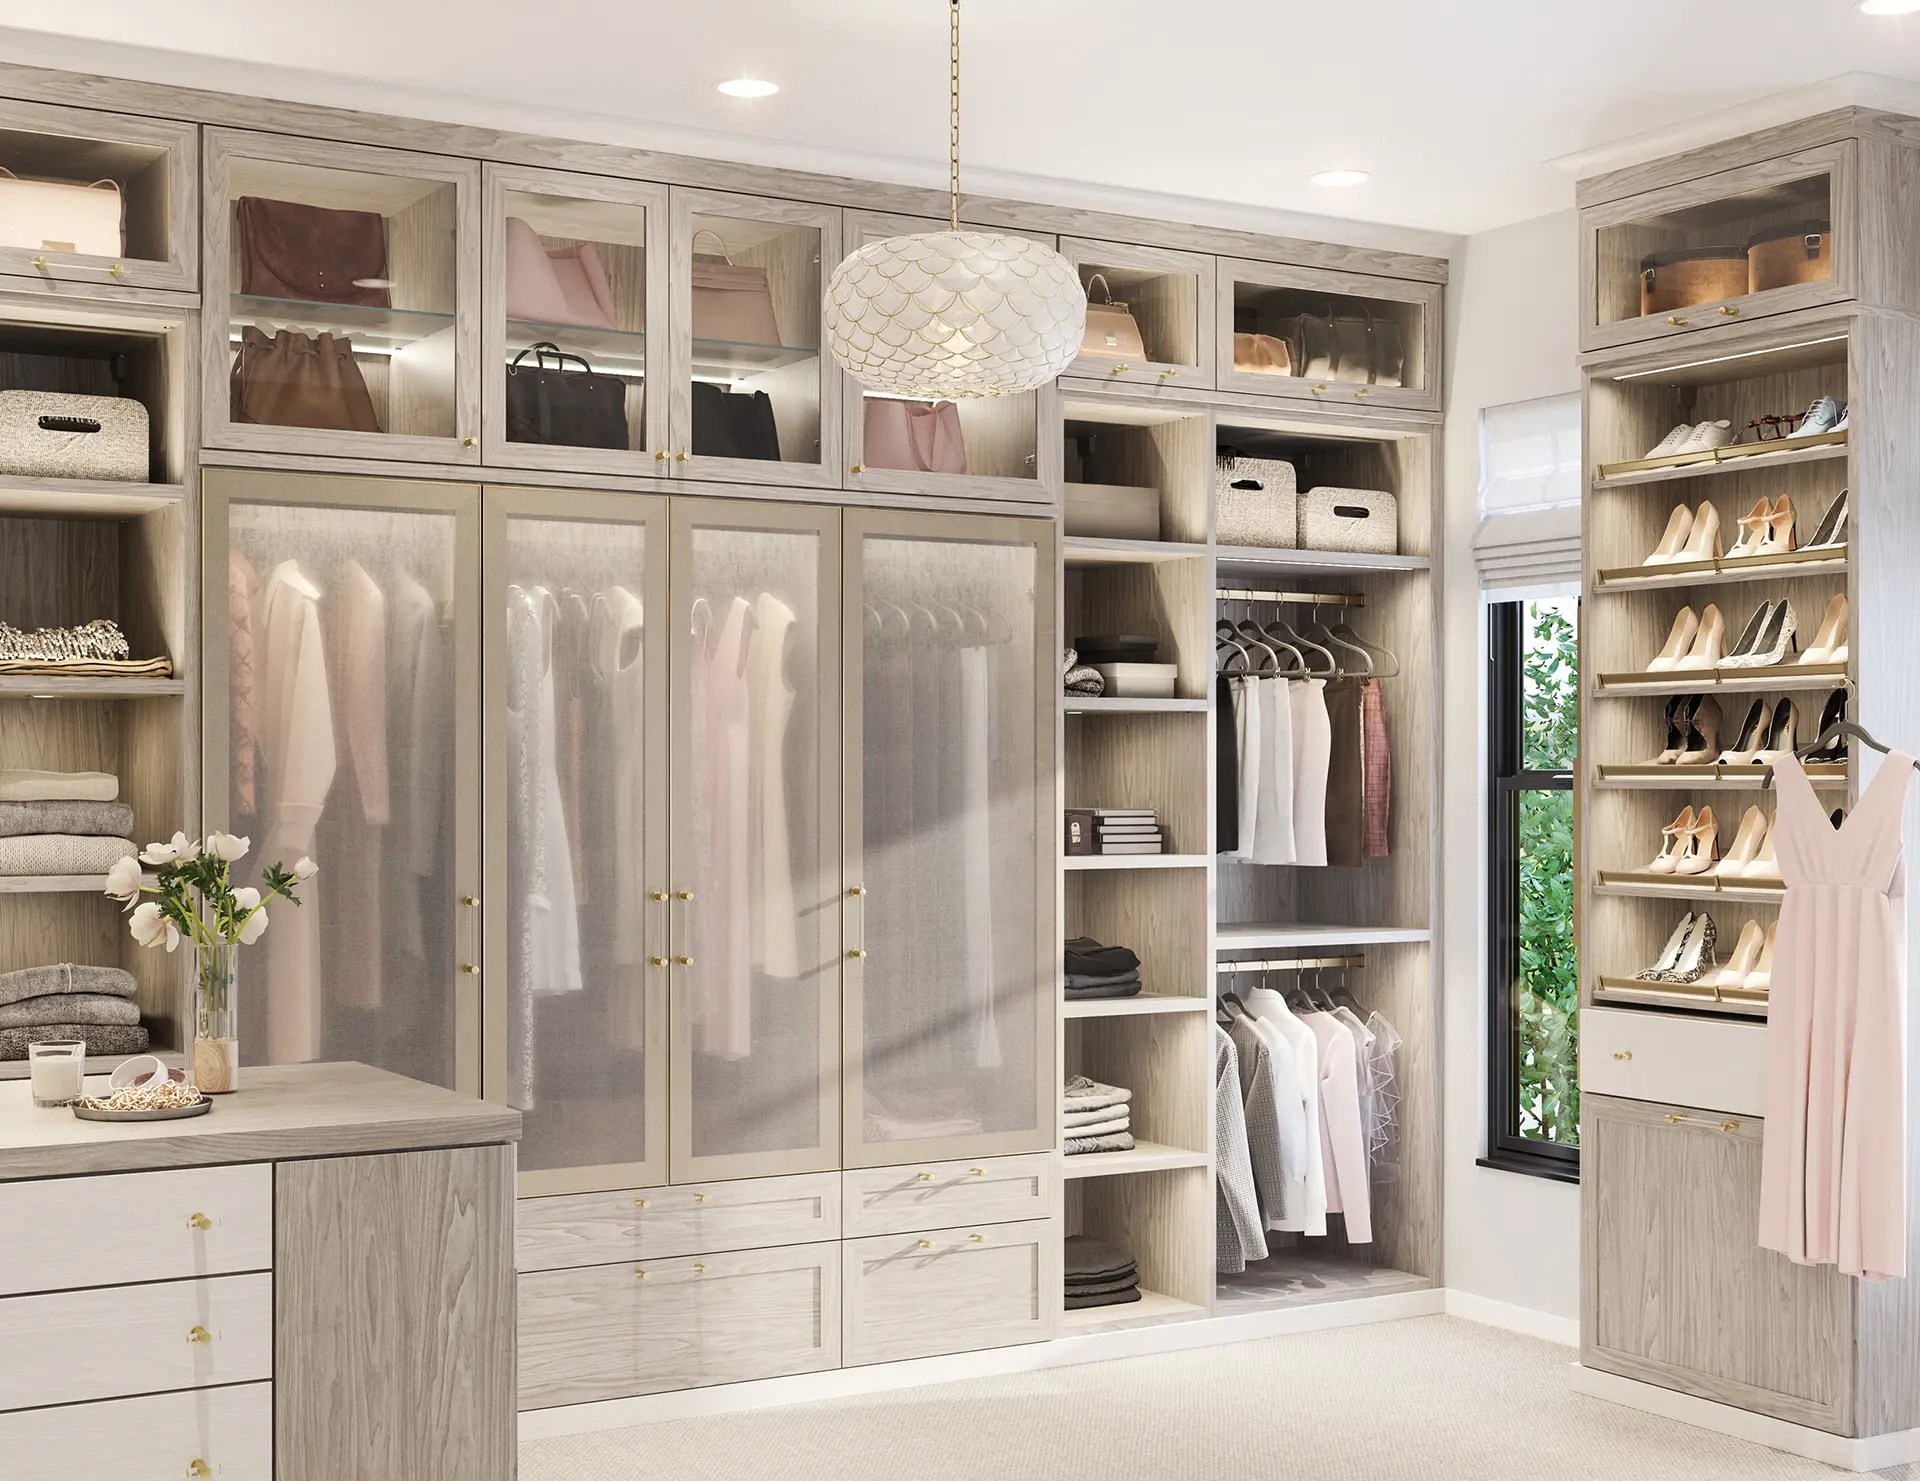 Working Wardrobes Walk In Closets Designs And Ideas By California Closets